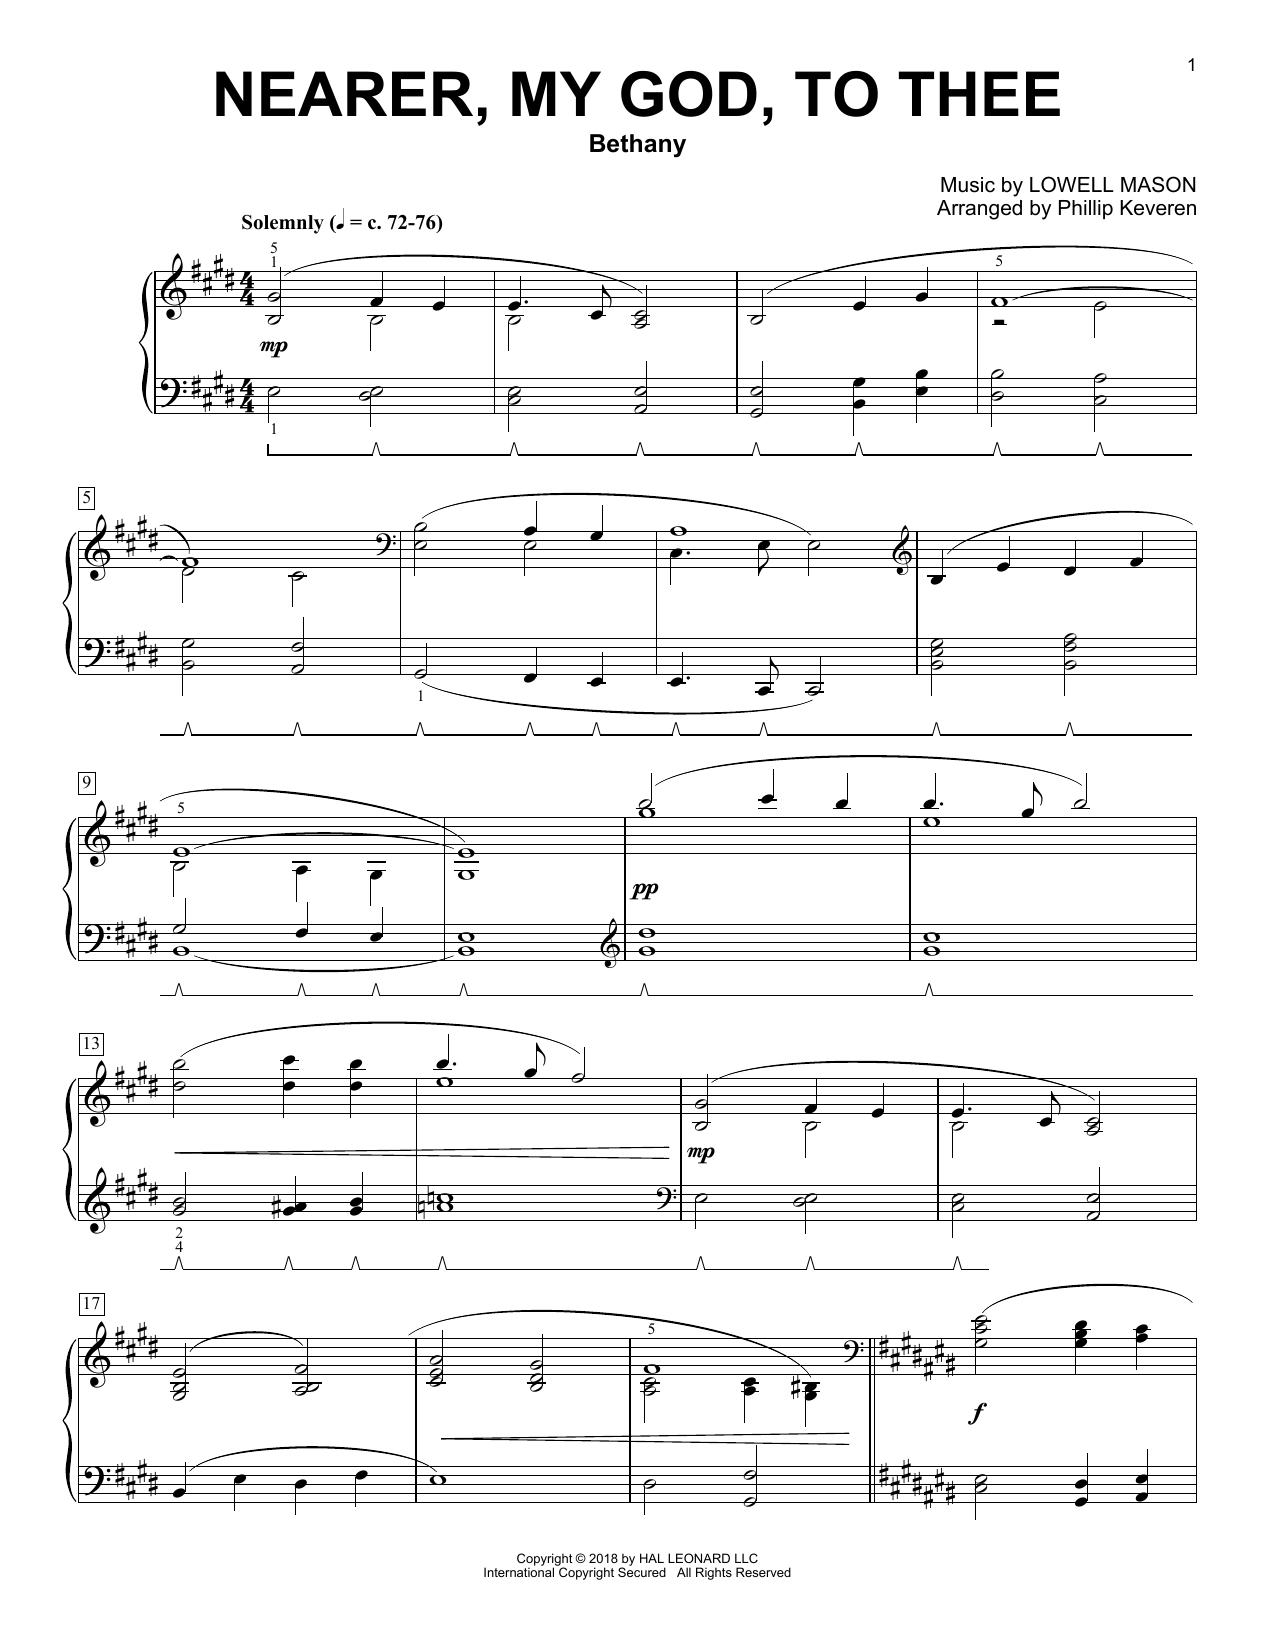 Lowell Mason Nearer, My God, To Thee [Classical version] (arr. Phillip Keveren) sheet music notes and chords. Download Printable PDF.